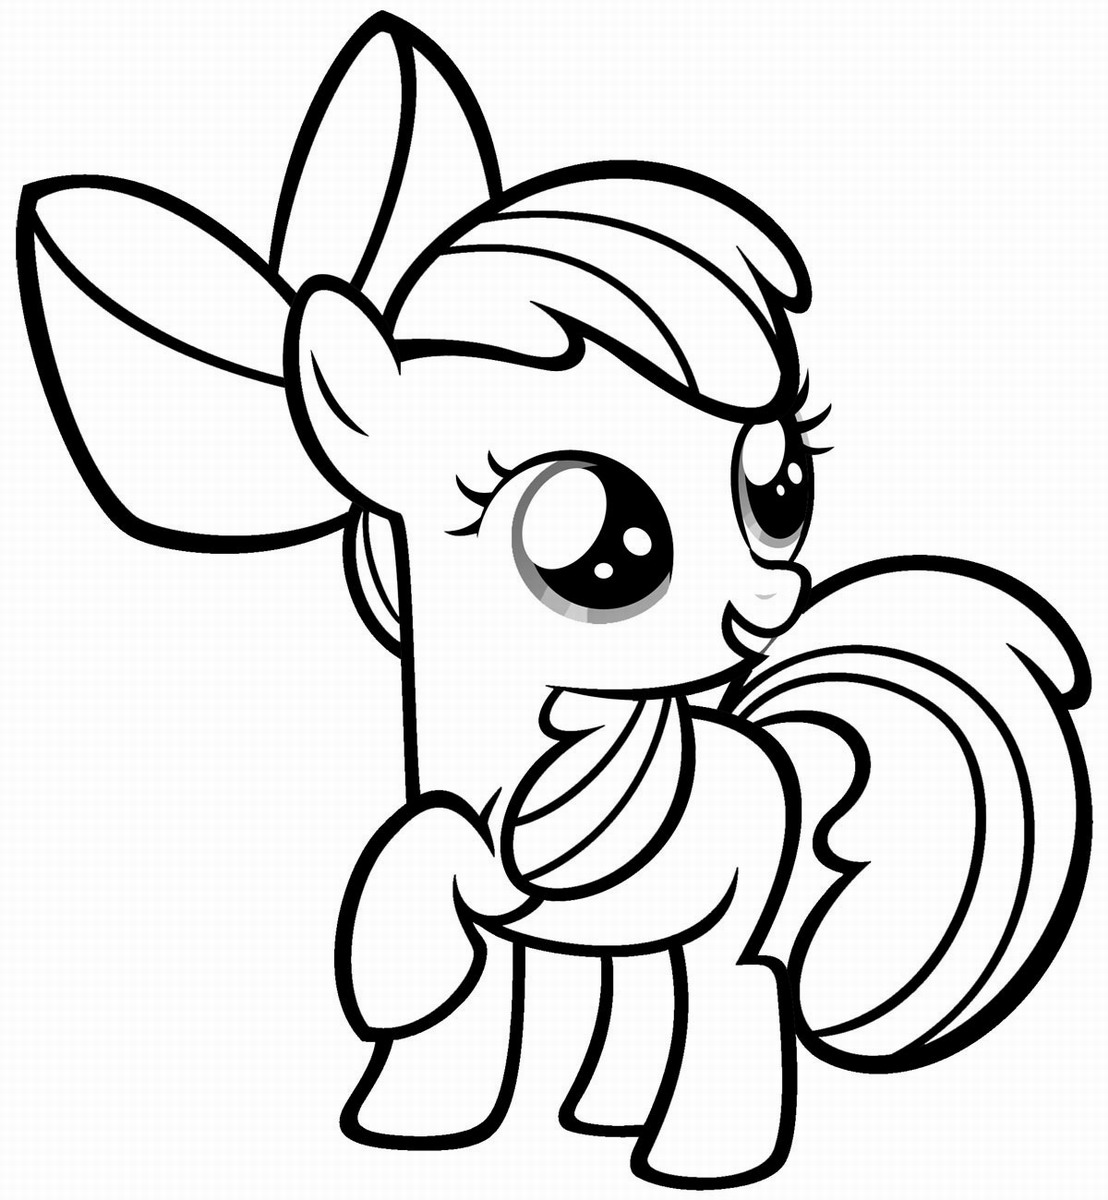 mlp coloring page my little pony coloring coloring pages kidsuki coloring page mlp